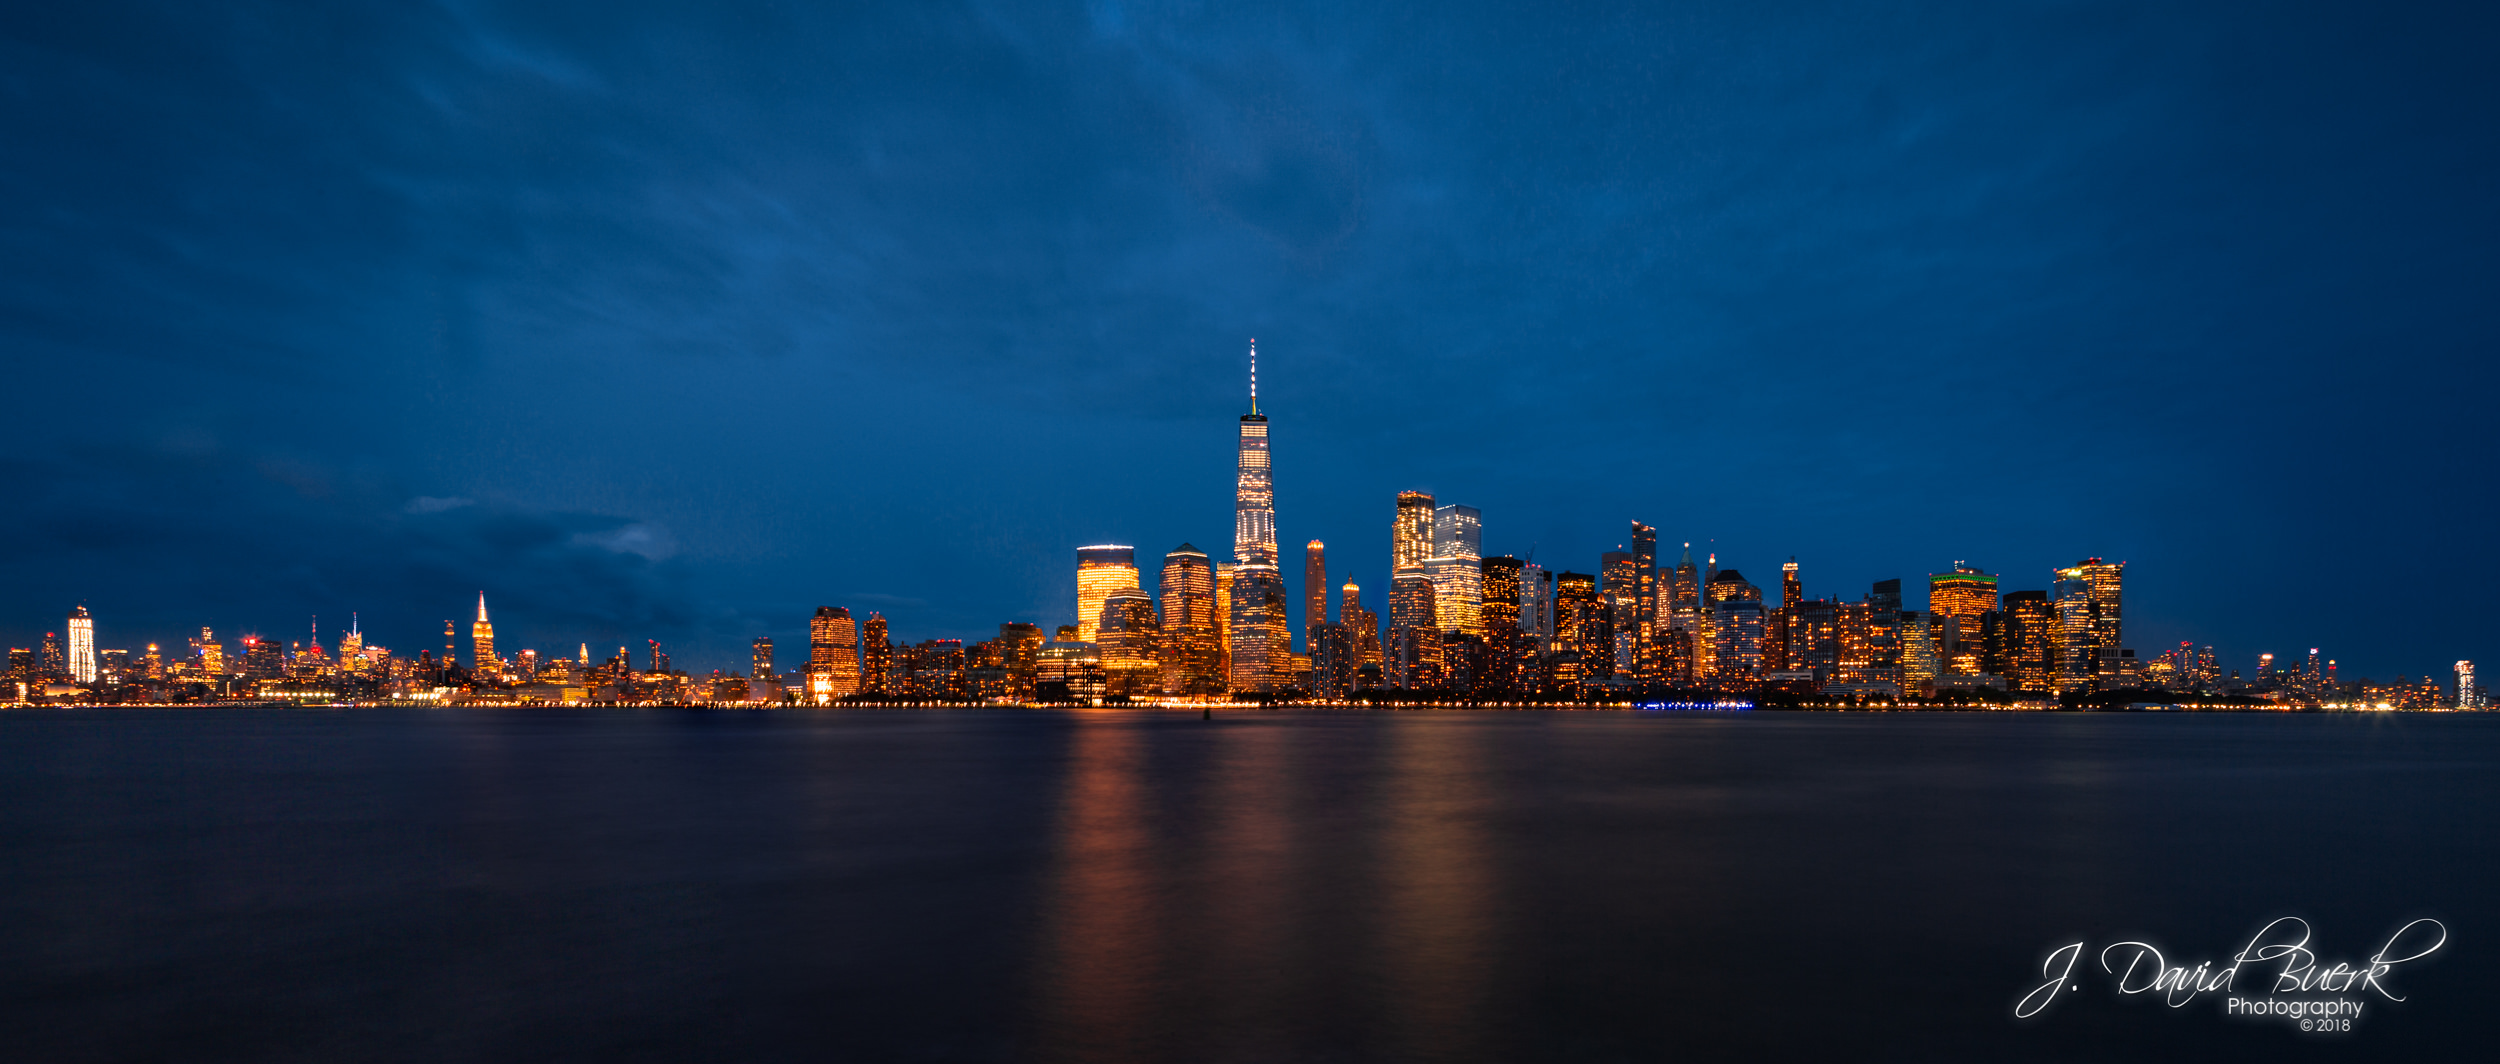 View of Manhattan from Liberty State Park, Jersey City, New Jersey.